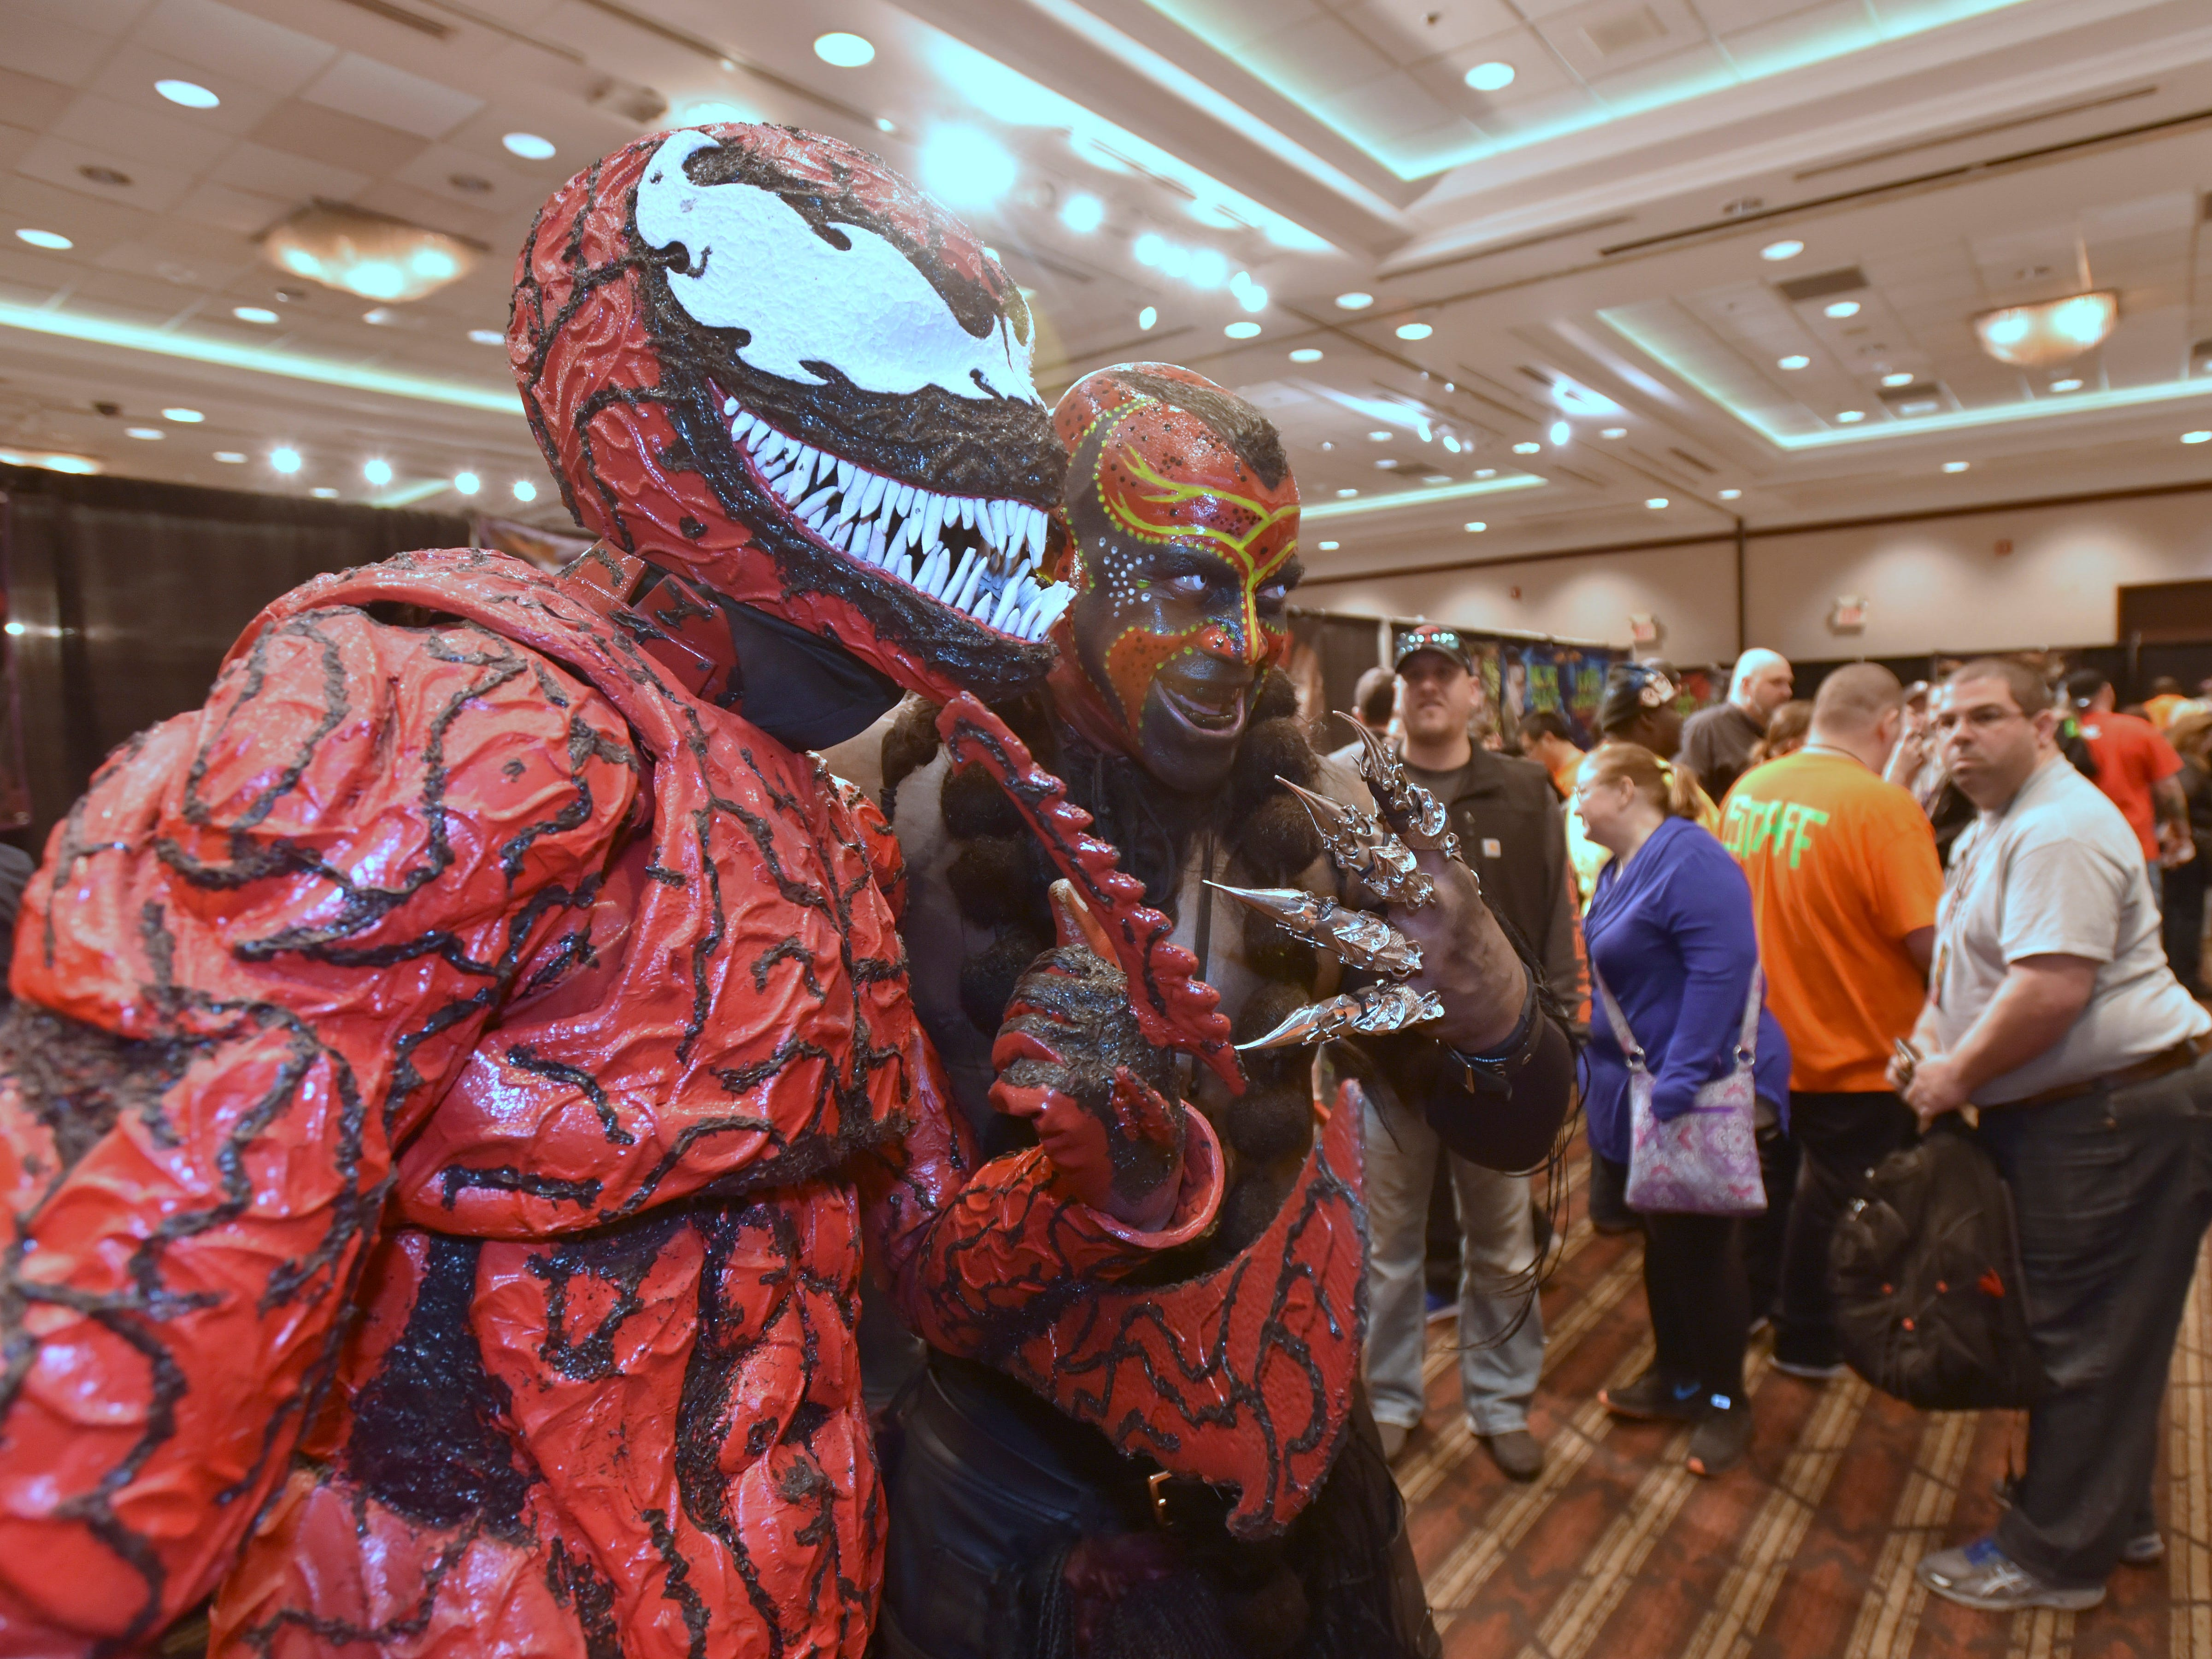 WWE Superstar wrestler 'The Boogeyman,' portrayed by Marty Wright, right, of Denver, Colorado, poses with 'Carnage,' portrayed by Cody Schuyler, left, 28, of Walpole Island, Ontario, Canada.